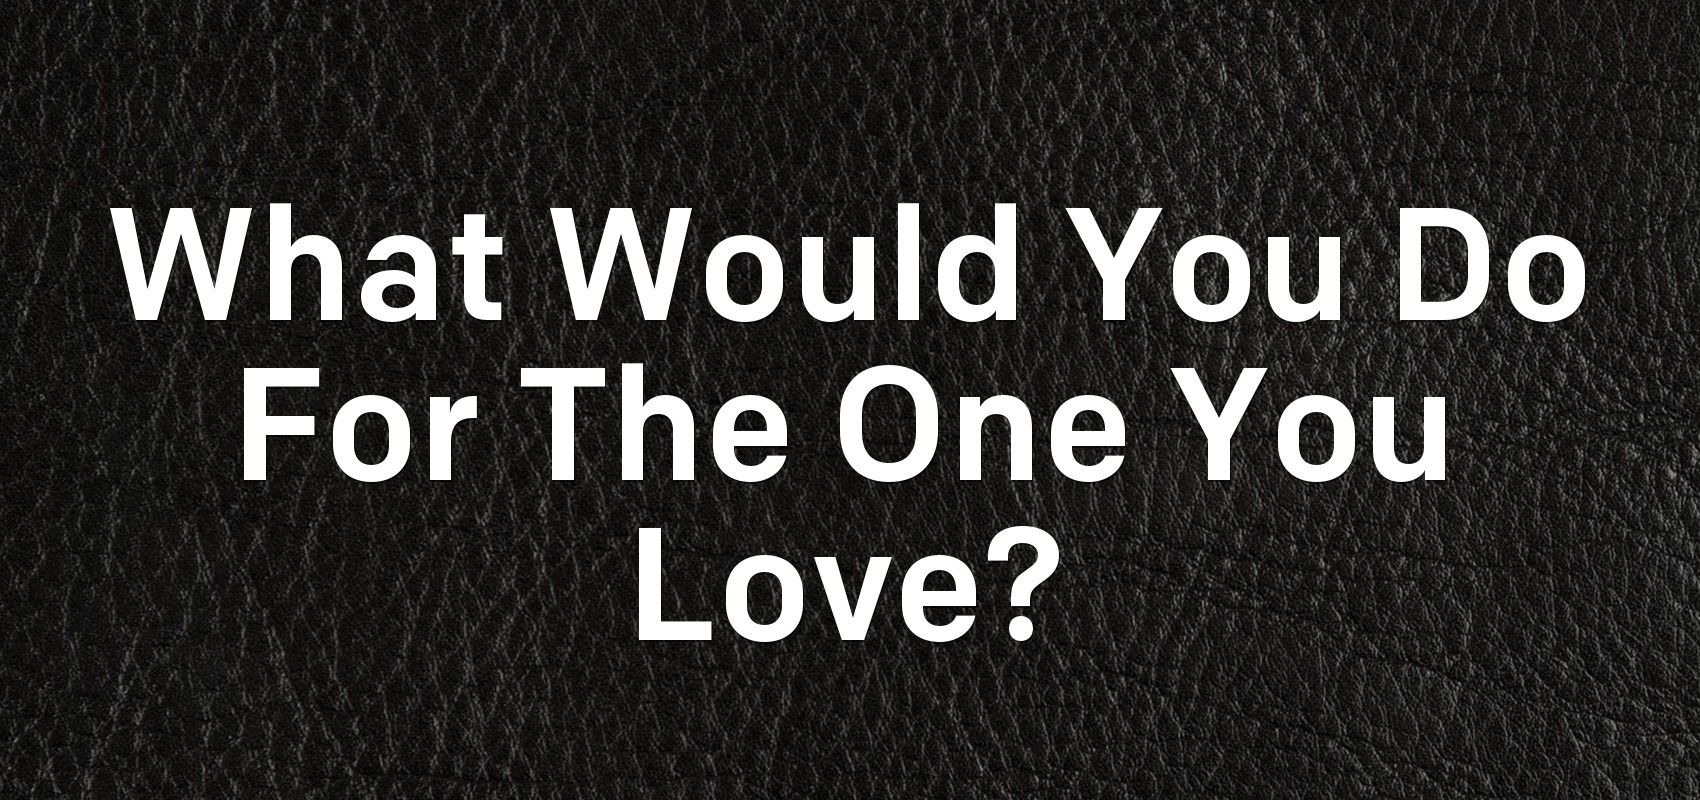 what would you do for the one you love